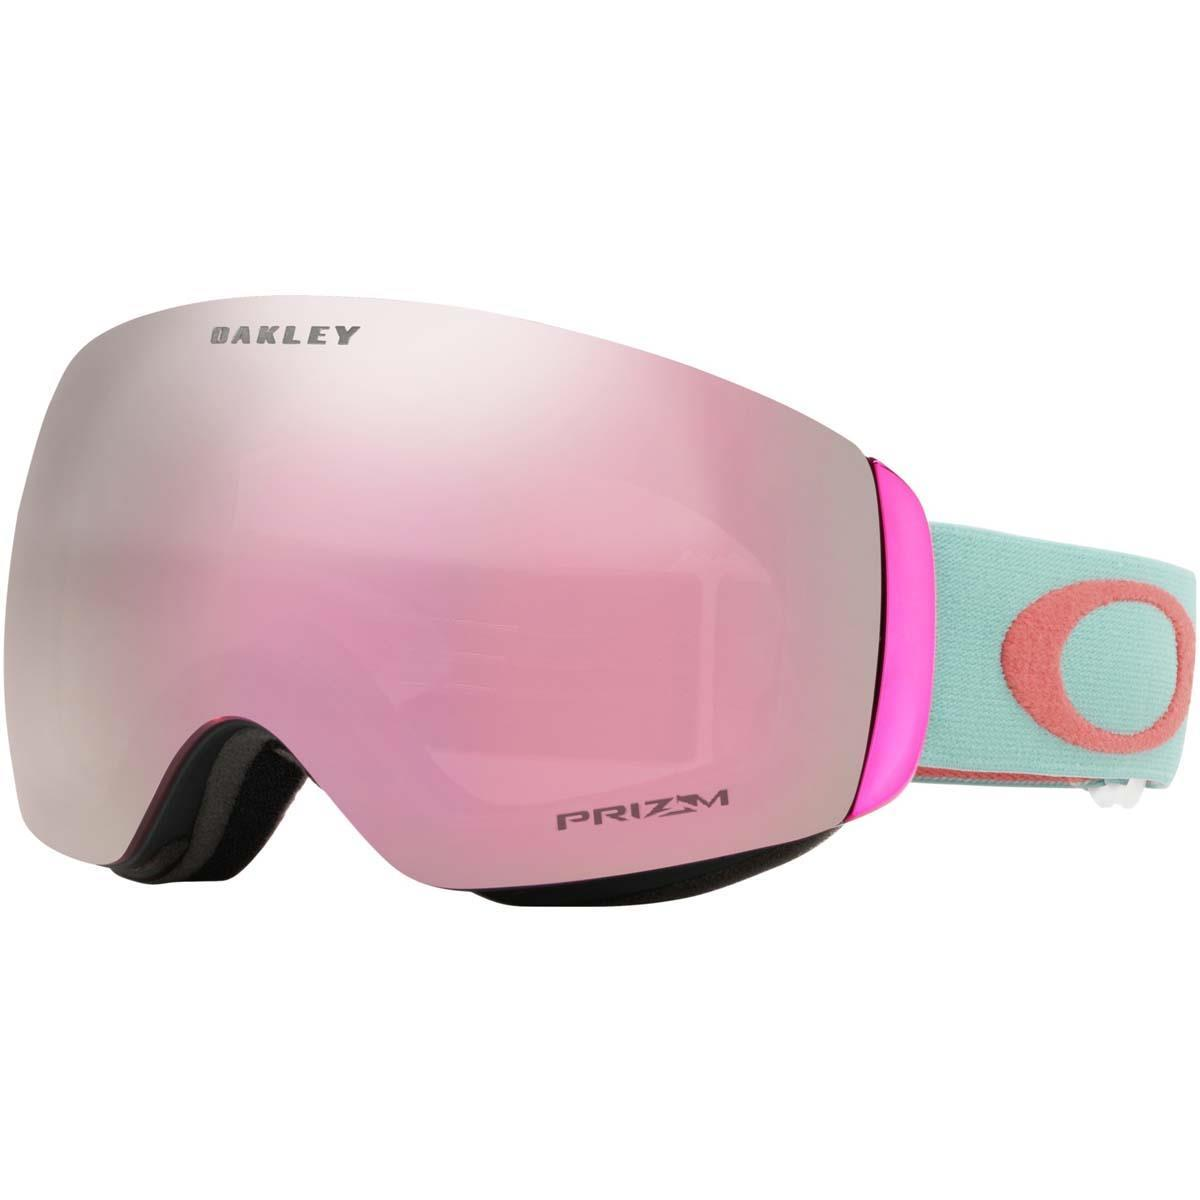 6f050a771e38 Oakley Prizm Flight Deck XM Snow Goggles - OO7064